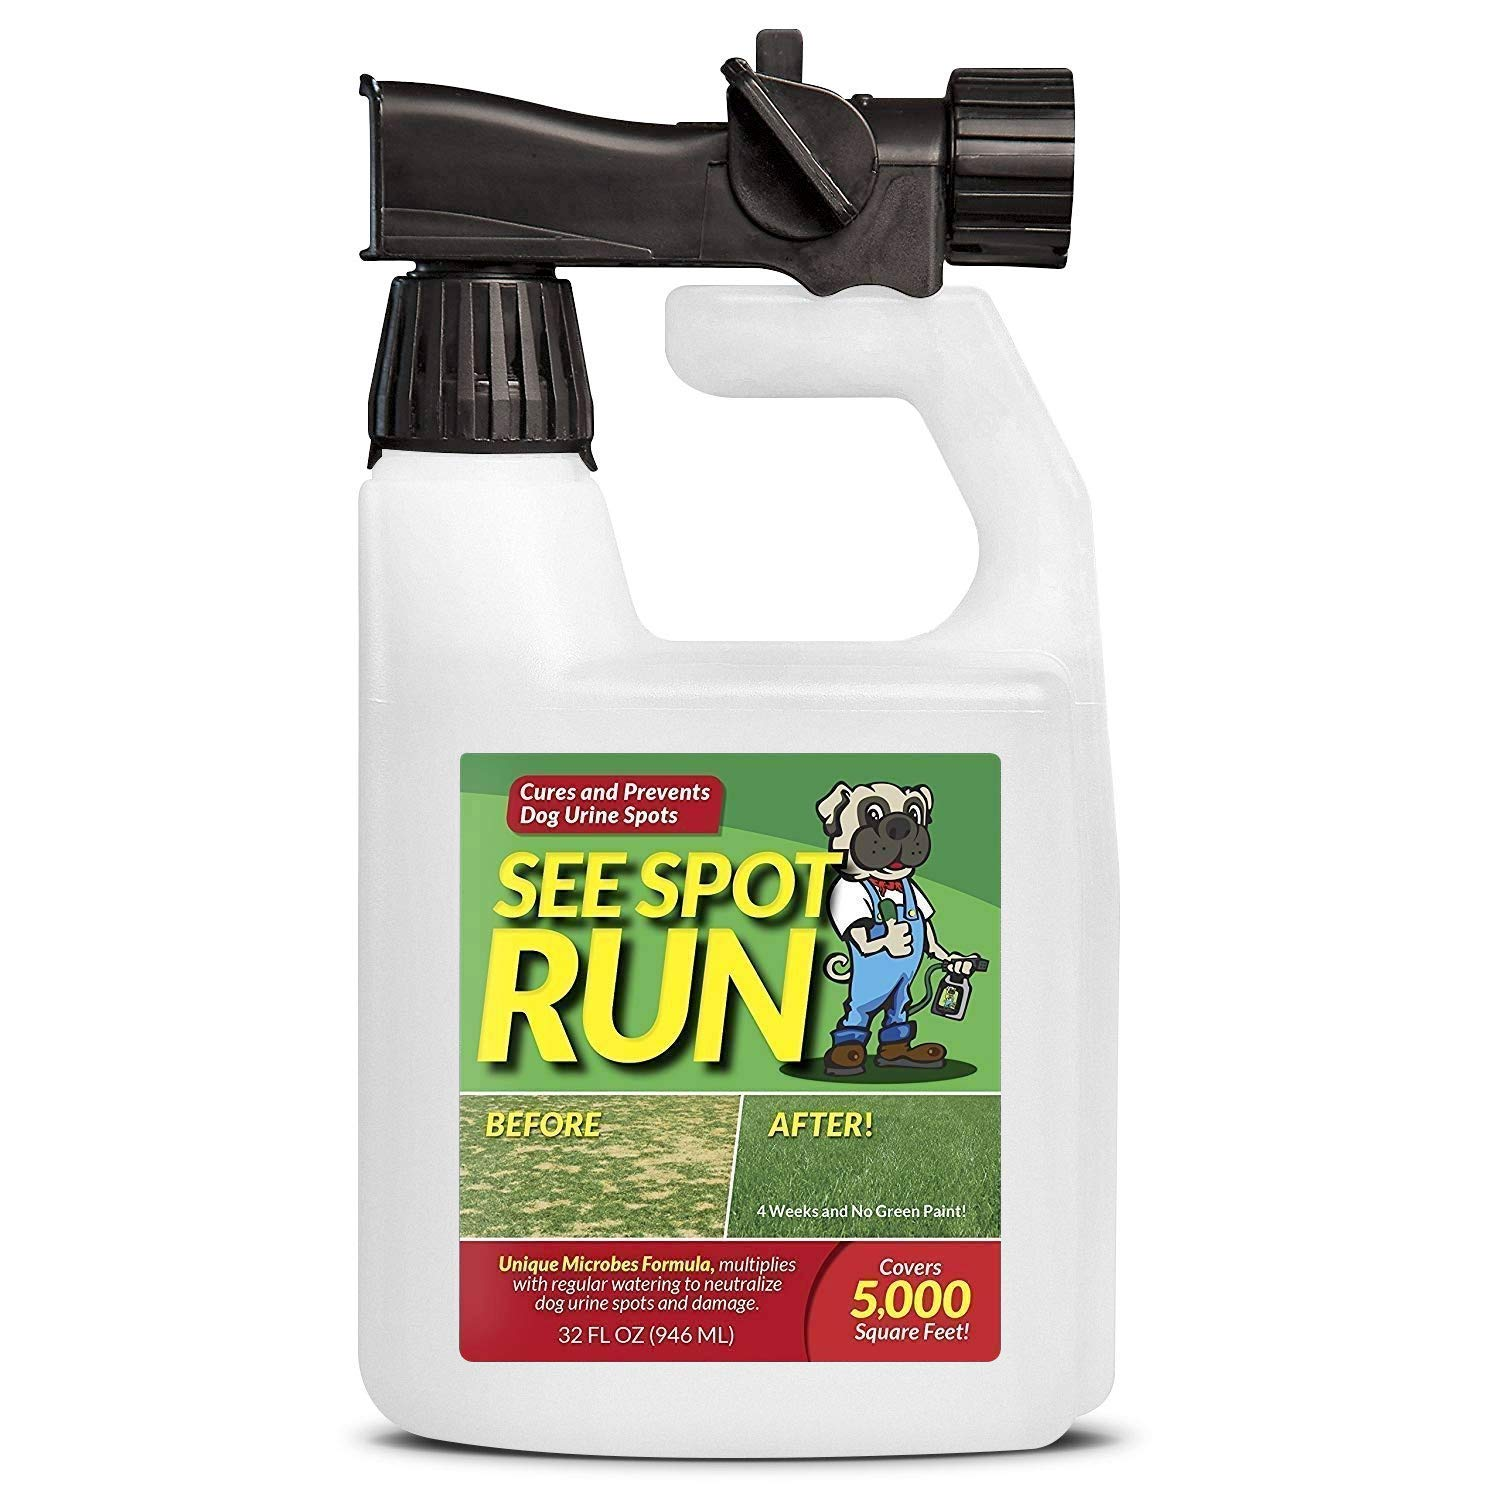 See Spot Run Lawn Protection - Dog Urine Grass Saver That Cures and Prevents Burn Spots. Pet Safe, All Natural Lawn Saver for Dogs. Safe to Use With Your Lawn Fertilizer. Made in USA Lawn Care Product by See Spot Run